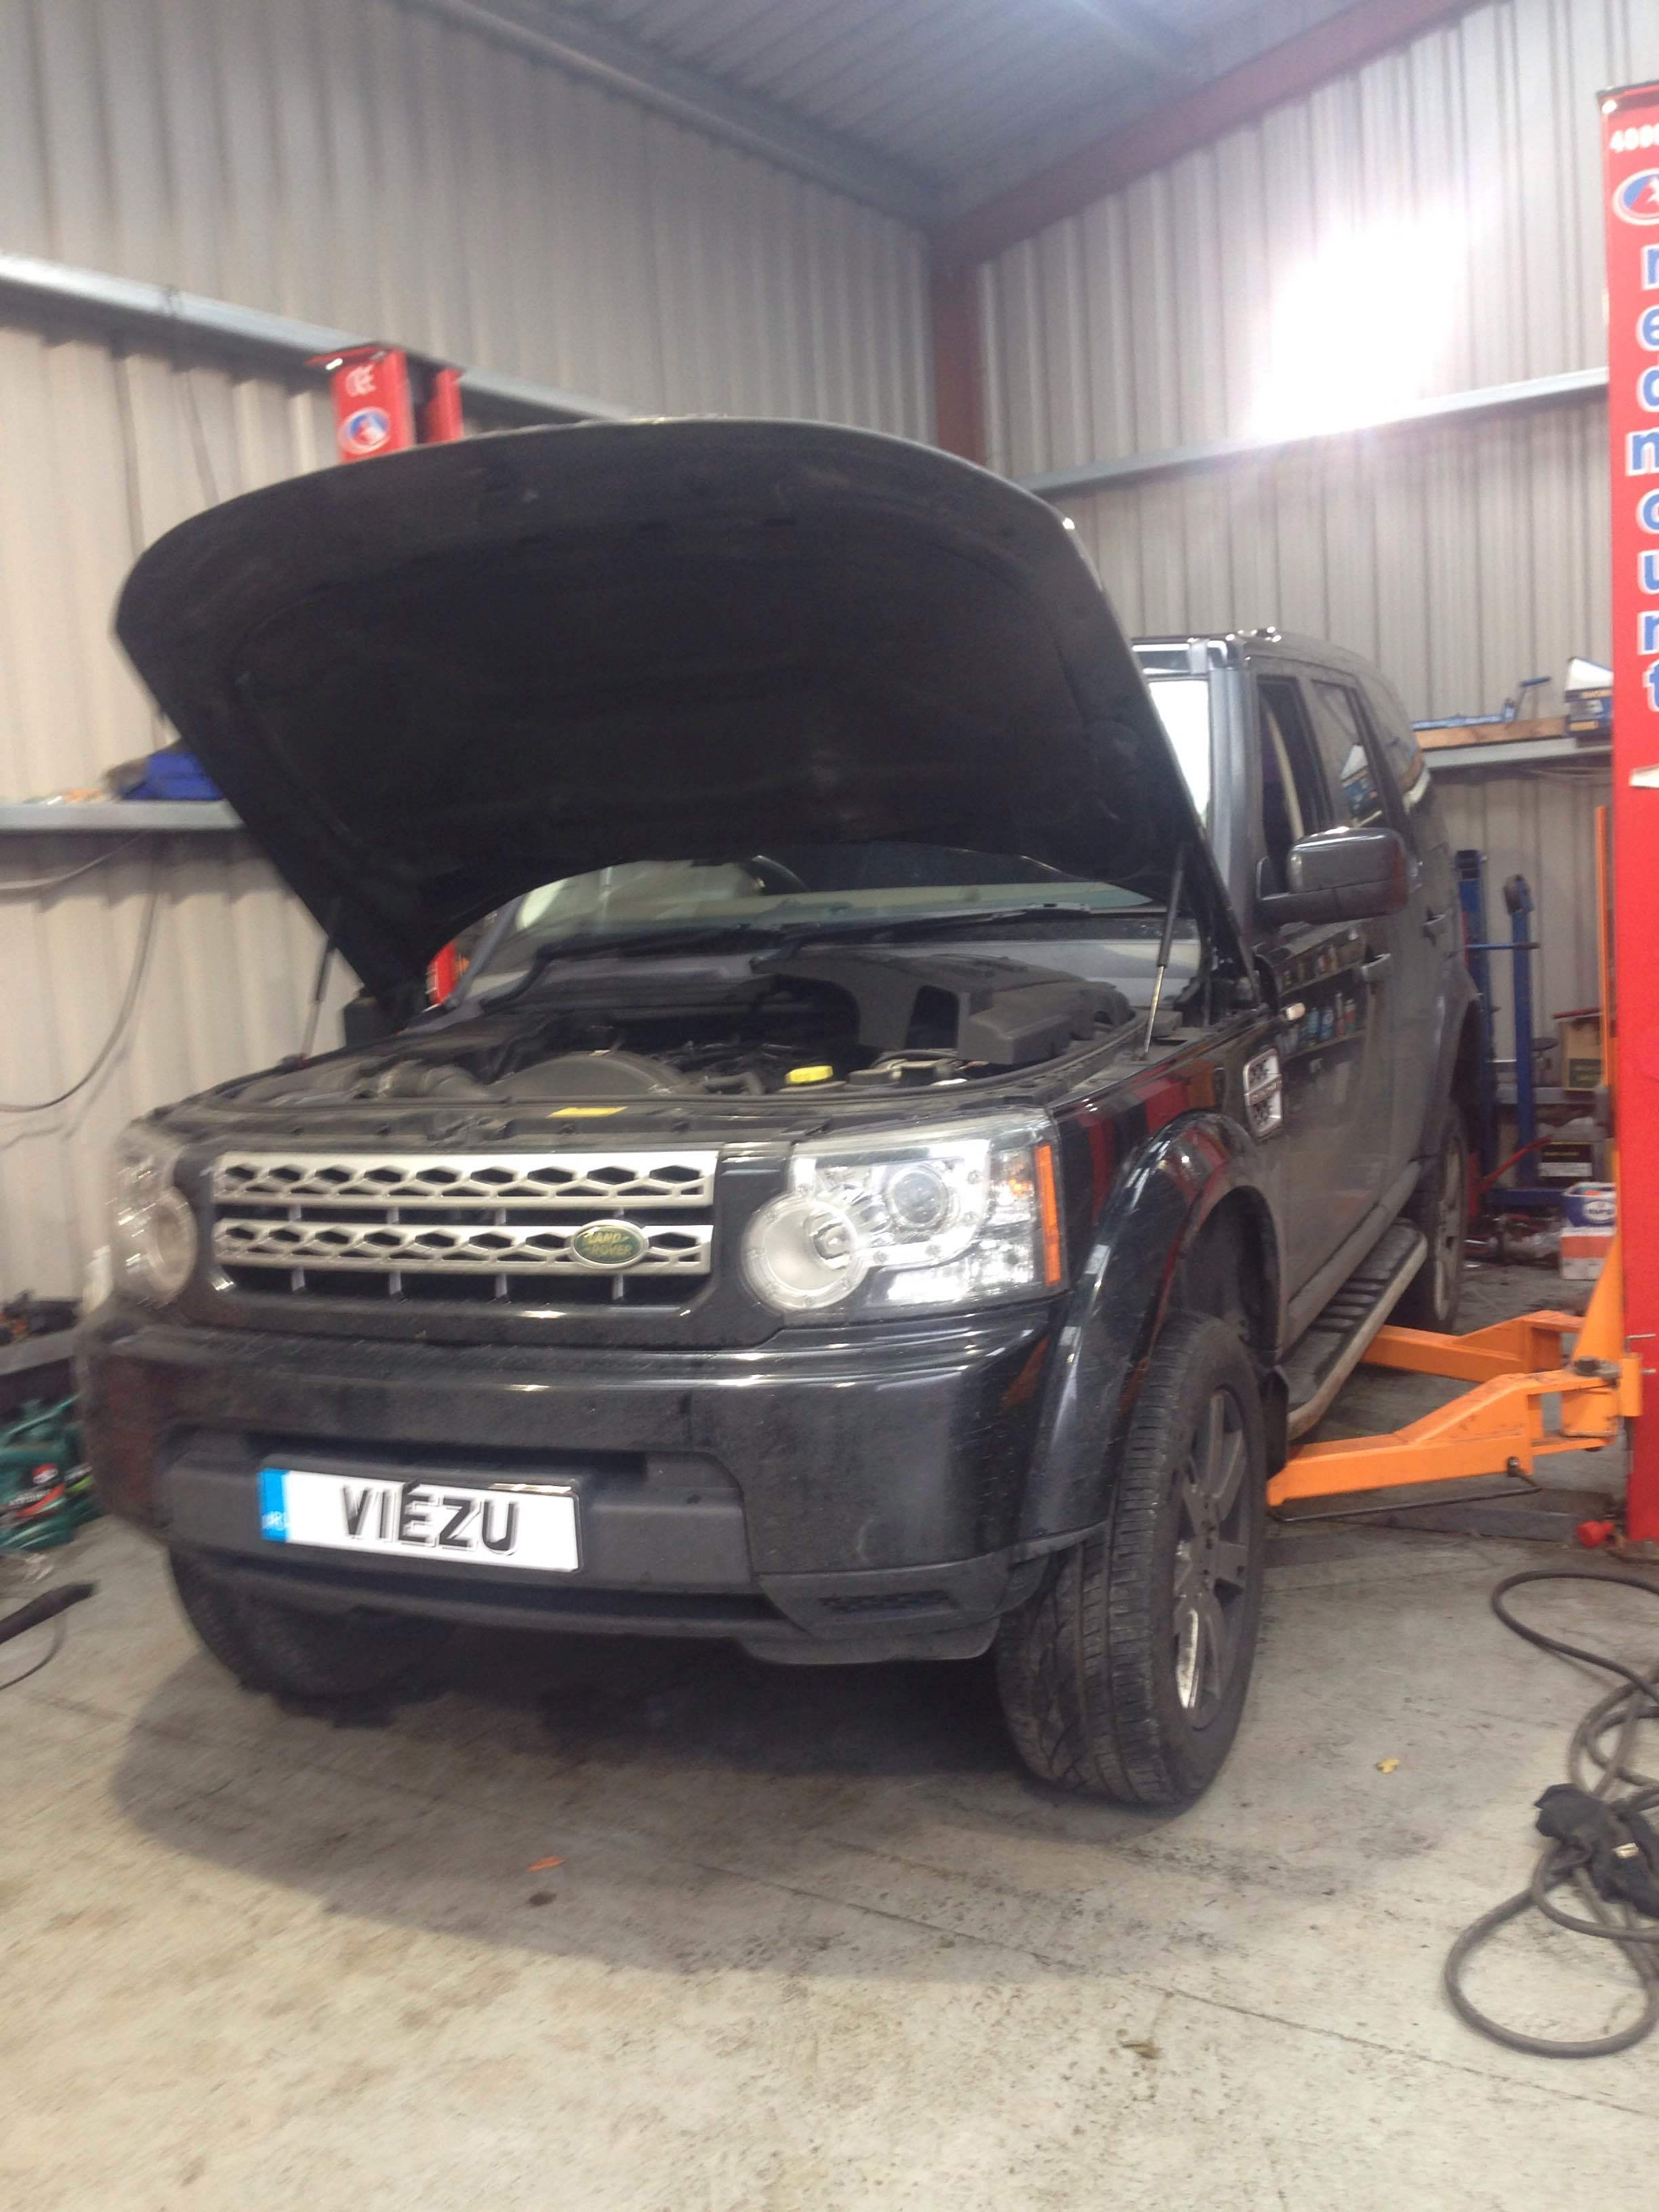 landrover discovery 4 ecu remapped.JPG